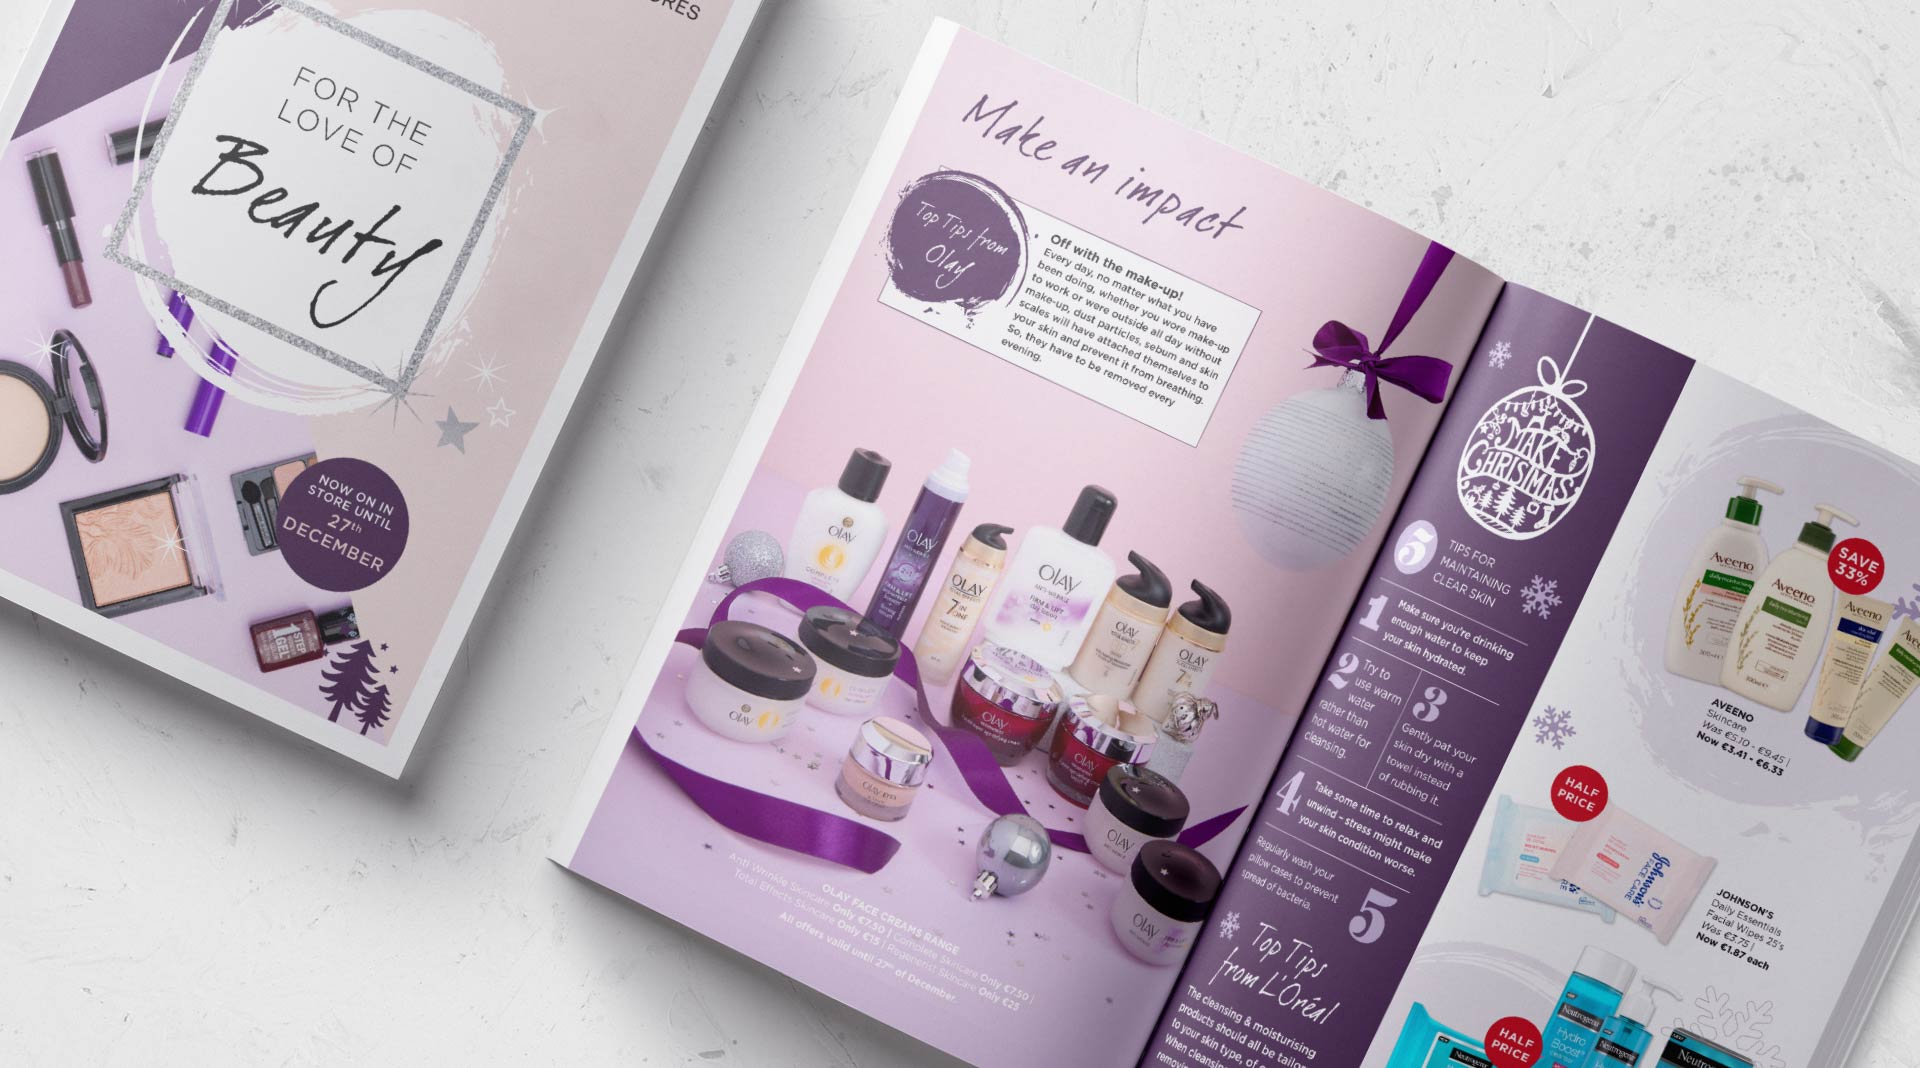 Photography and magazine design for instore Beauty event.